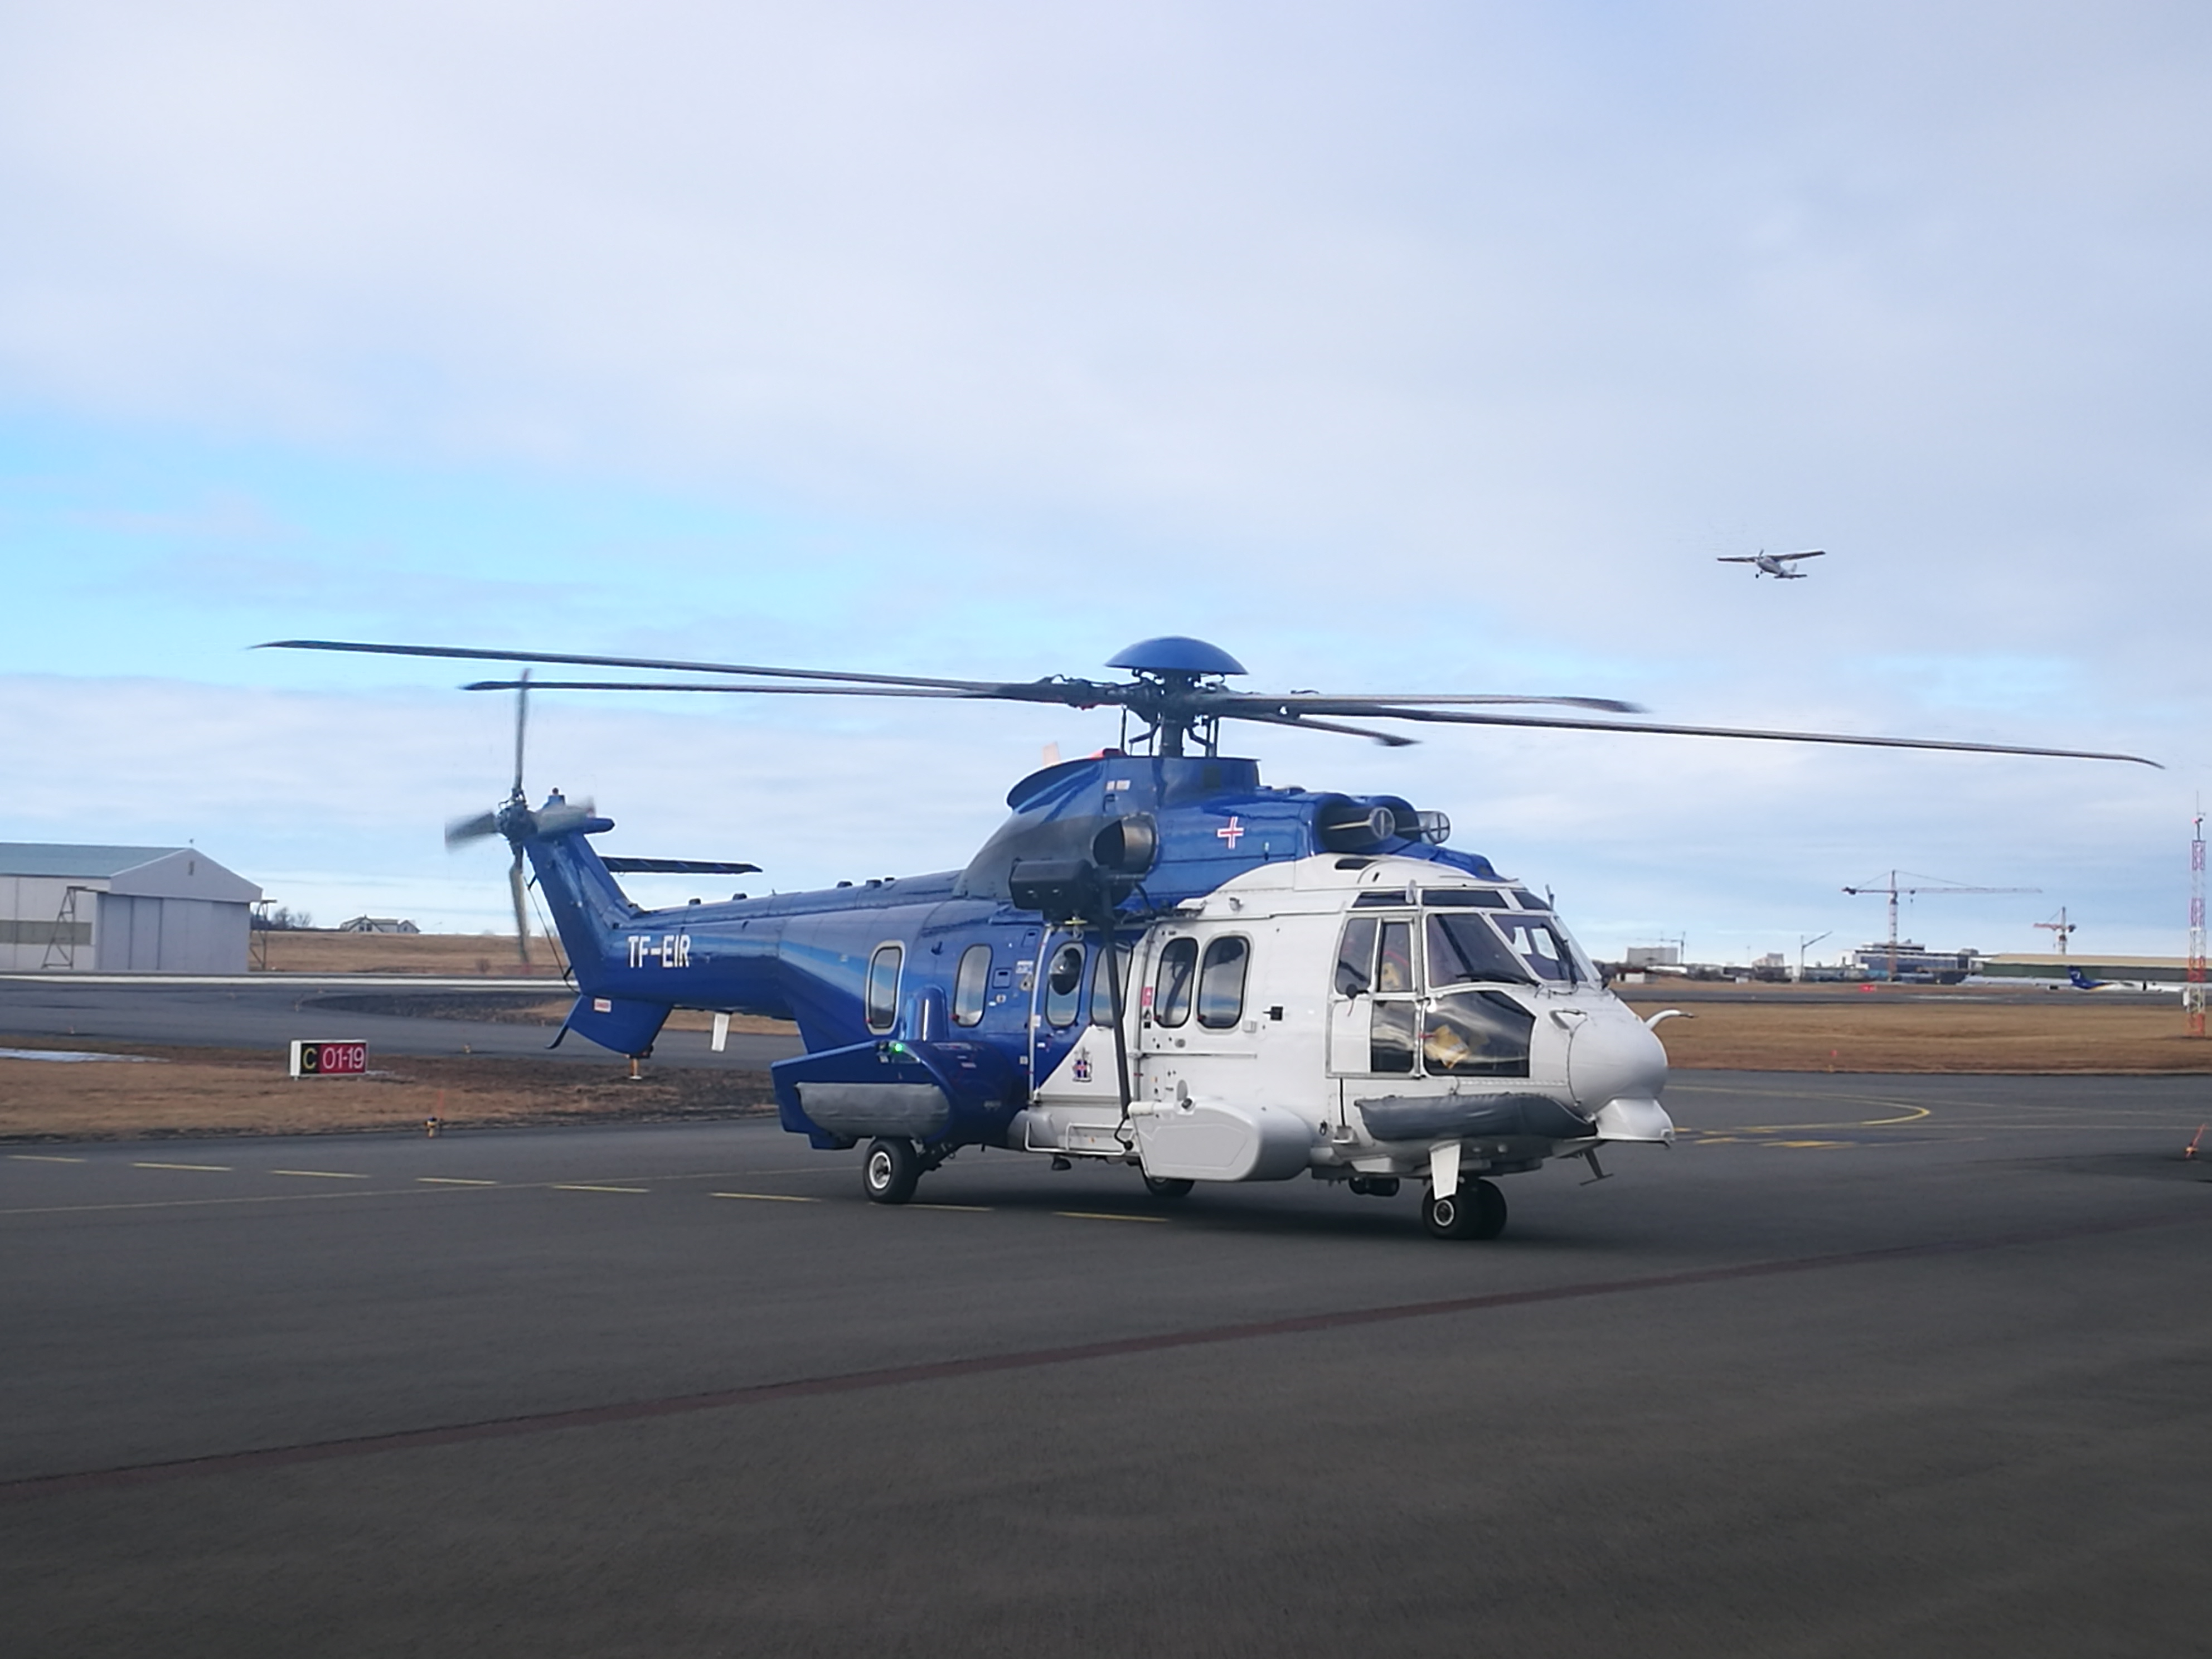 Icelandic Coast Guard Airbus H225LP (reg. TF-EIR) // Source: Flugblogg